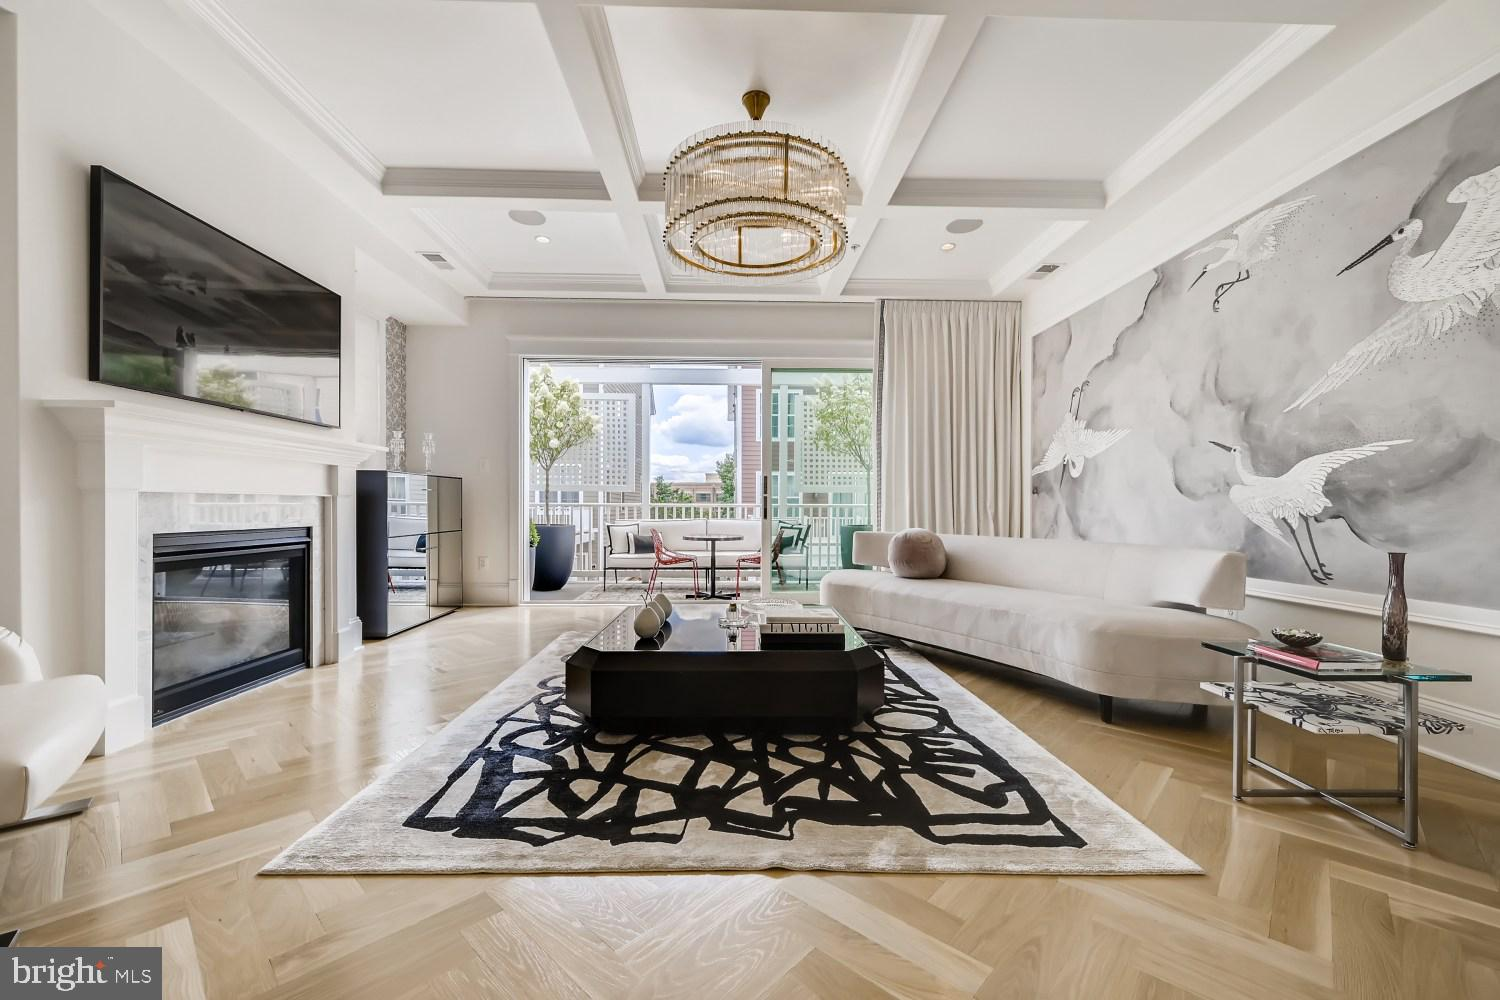 This architecturally stunning and newly built four-level contemporary end-of-group townhouse boasts over 2,800 square feet of elevated living featuring three bedrooms, four full, one half bathroom, and two car garage. The open floor plan was thoughtfully designed with bespoke appointments and quality finishes throughout including 10-foot ceilings, designer lighting, wide oak herringbone hardwood floors, custom blinds/drapery and smart home audio system.   An elegant stoop leads to the breathtaking entrance level comprised of a vestibule finished in white herringbone Arabascata flooring, open library/office with wall to wall custom built ins, full bathroom and wide plank oak hardwood. The bright and airy main level showcases 10 ft ceilings, herringbone white oak hardwood floors, a dramatic family room with coffered ceiling, restoration hardware chandelier, gas fireplace, custom accent mural by Philip Jefferies and a wall of triple glass doors leading to the private deck offering true indoor /outdoor living.   The open Chefs kitchen is exquisitely appointed with an oversized 12 foot Calacatta Trevi polished waterfall island with double sided cabinets, seamless full slab Calacatta backsplash, custom Italian cabinetry, Kohler stainless steel farm sink and professional-grade appliances including Sub-Zero refrigerator & wine storage, Miele built-in espresso machine, wall oven & speed oven/microwave and Zephyr Anzio range hood. A floating built-in bar finished in Italian cabinetry & onyx slab countertop, pantry and a stylish powder room complete this well-planned level.  Retreat to the third-floor where you will find two generously proportioned owner suite bedrooms with well-appointed en-suite bathrooms in addition to a full laundry room. Featuring herringbone hardwood floors, custom blinds, professionally designed dressing room with custom built-ins by California Closets. The luxurious marble bathrooms feature stunning vanities with Italian cabinetry in a high gloss finis